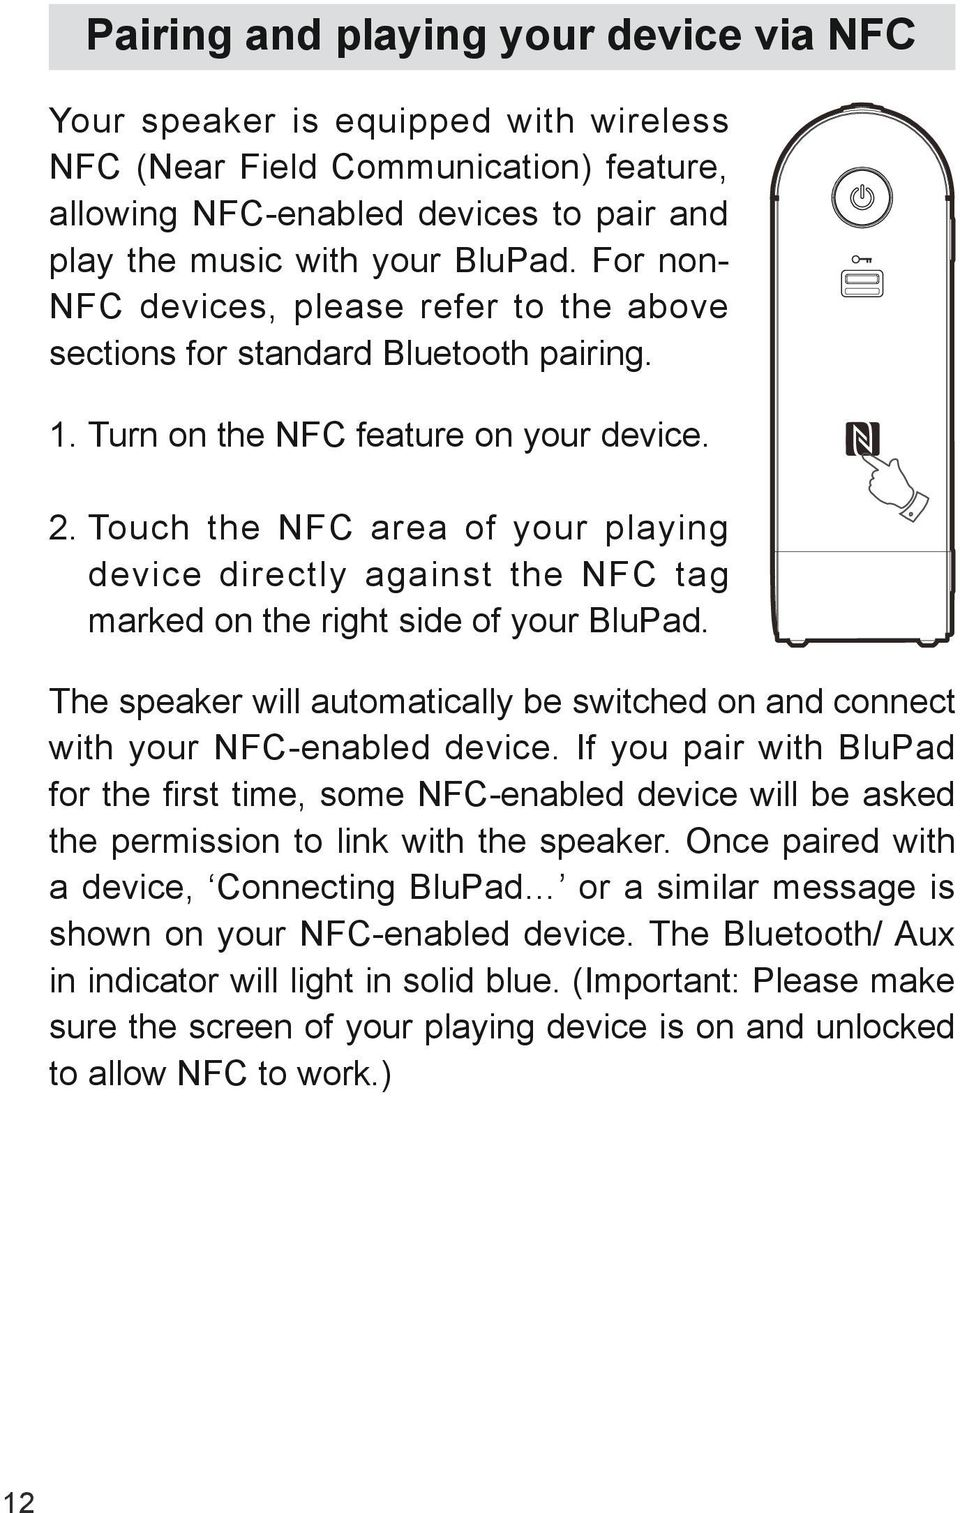 Touch the NFC area of your playing device directly against the NFC tag marked on the right side of your BluPad. The speaker will automatically be switched on and connect with your NFC-enabled device.